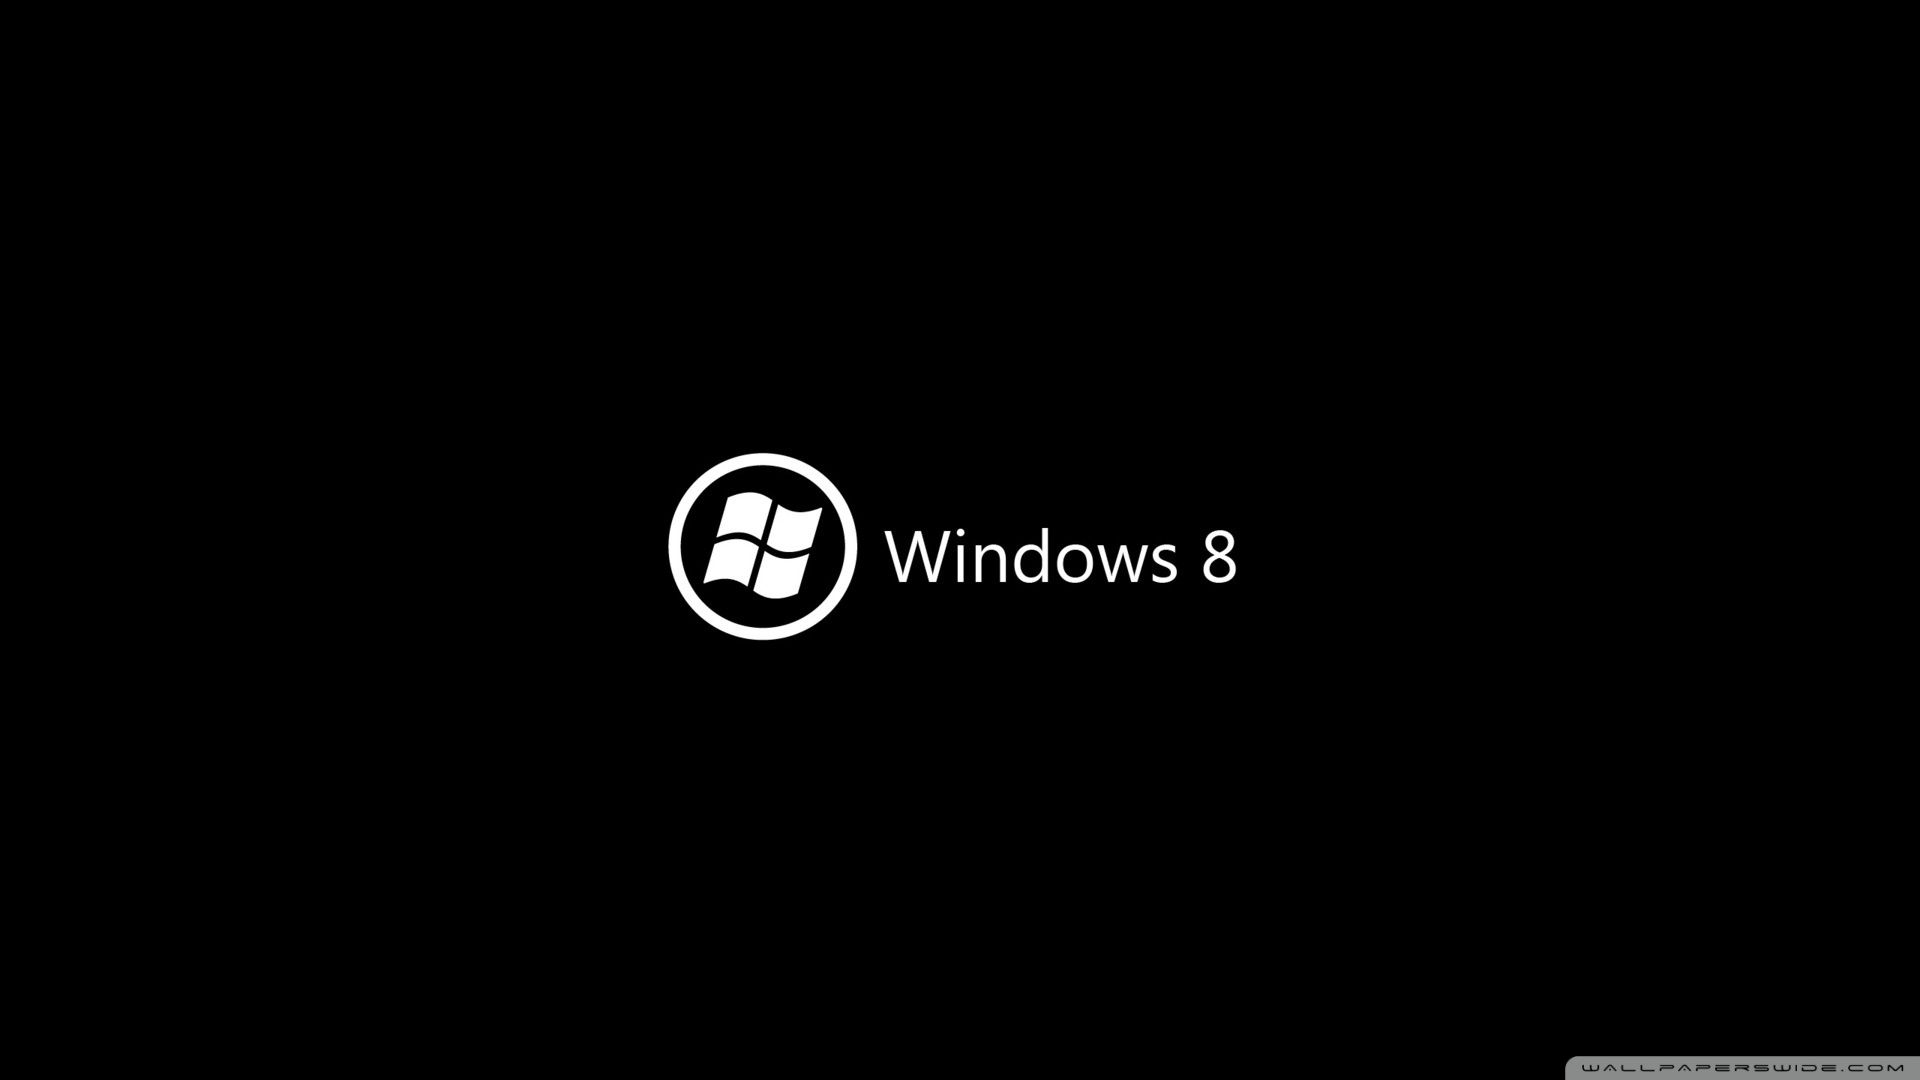 Windows 8 background image disappears - Full Hd P Hitech Wallpapers Desktop Backgrounds Hd Downloads